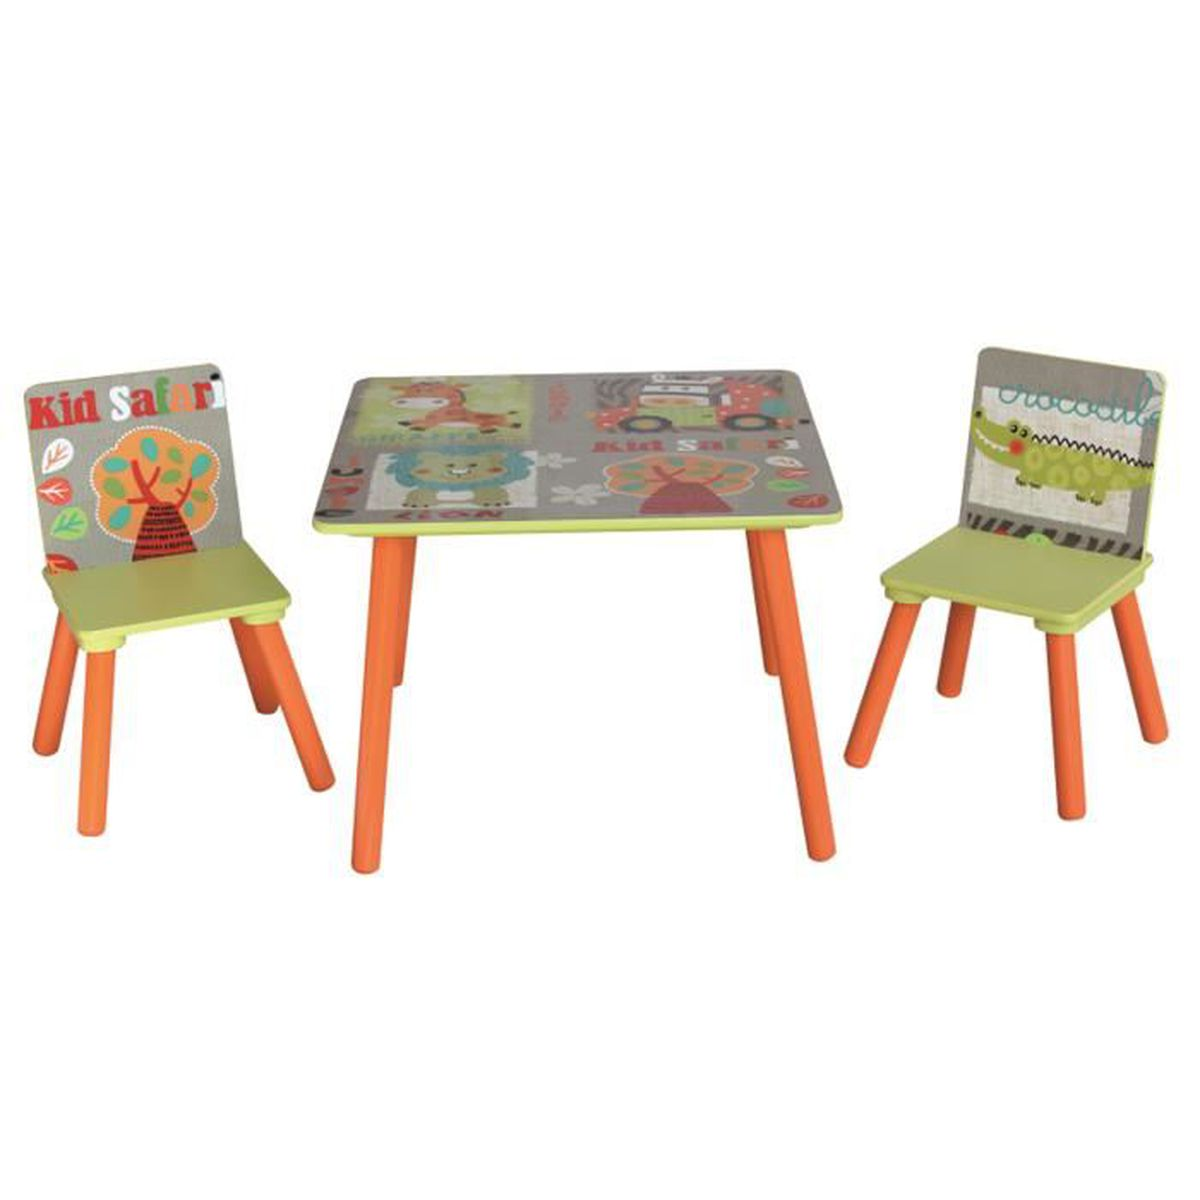 ensemble table et 2 chaises pour enfant en bois motif animaux safari achat vente table et. Black Bedroom Furniture Sets. Home Design Ideas